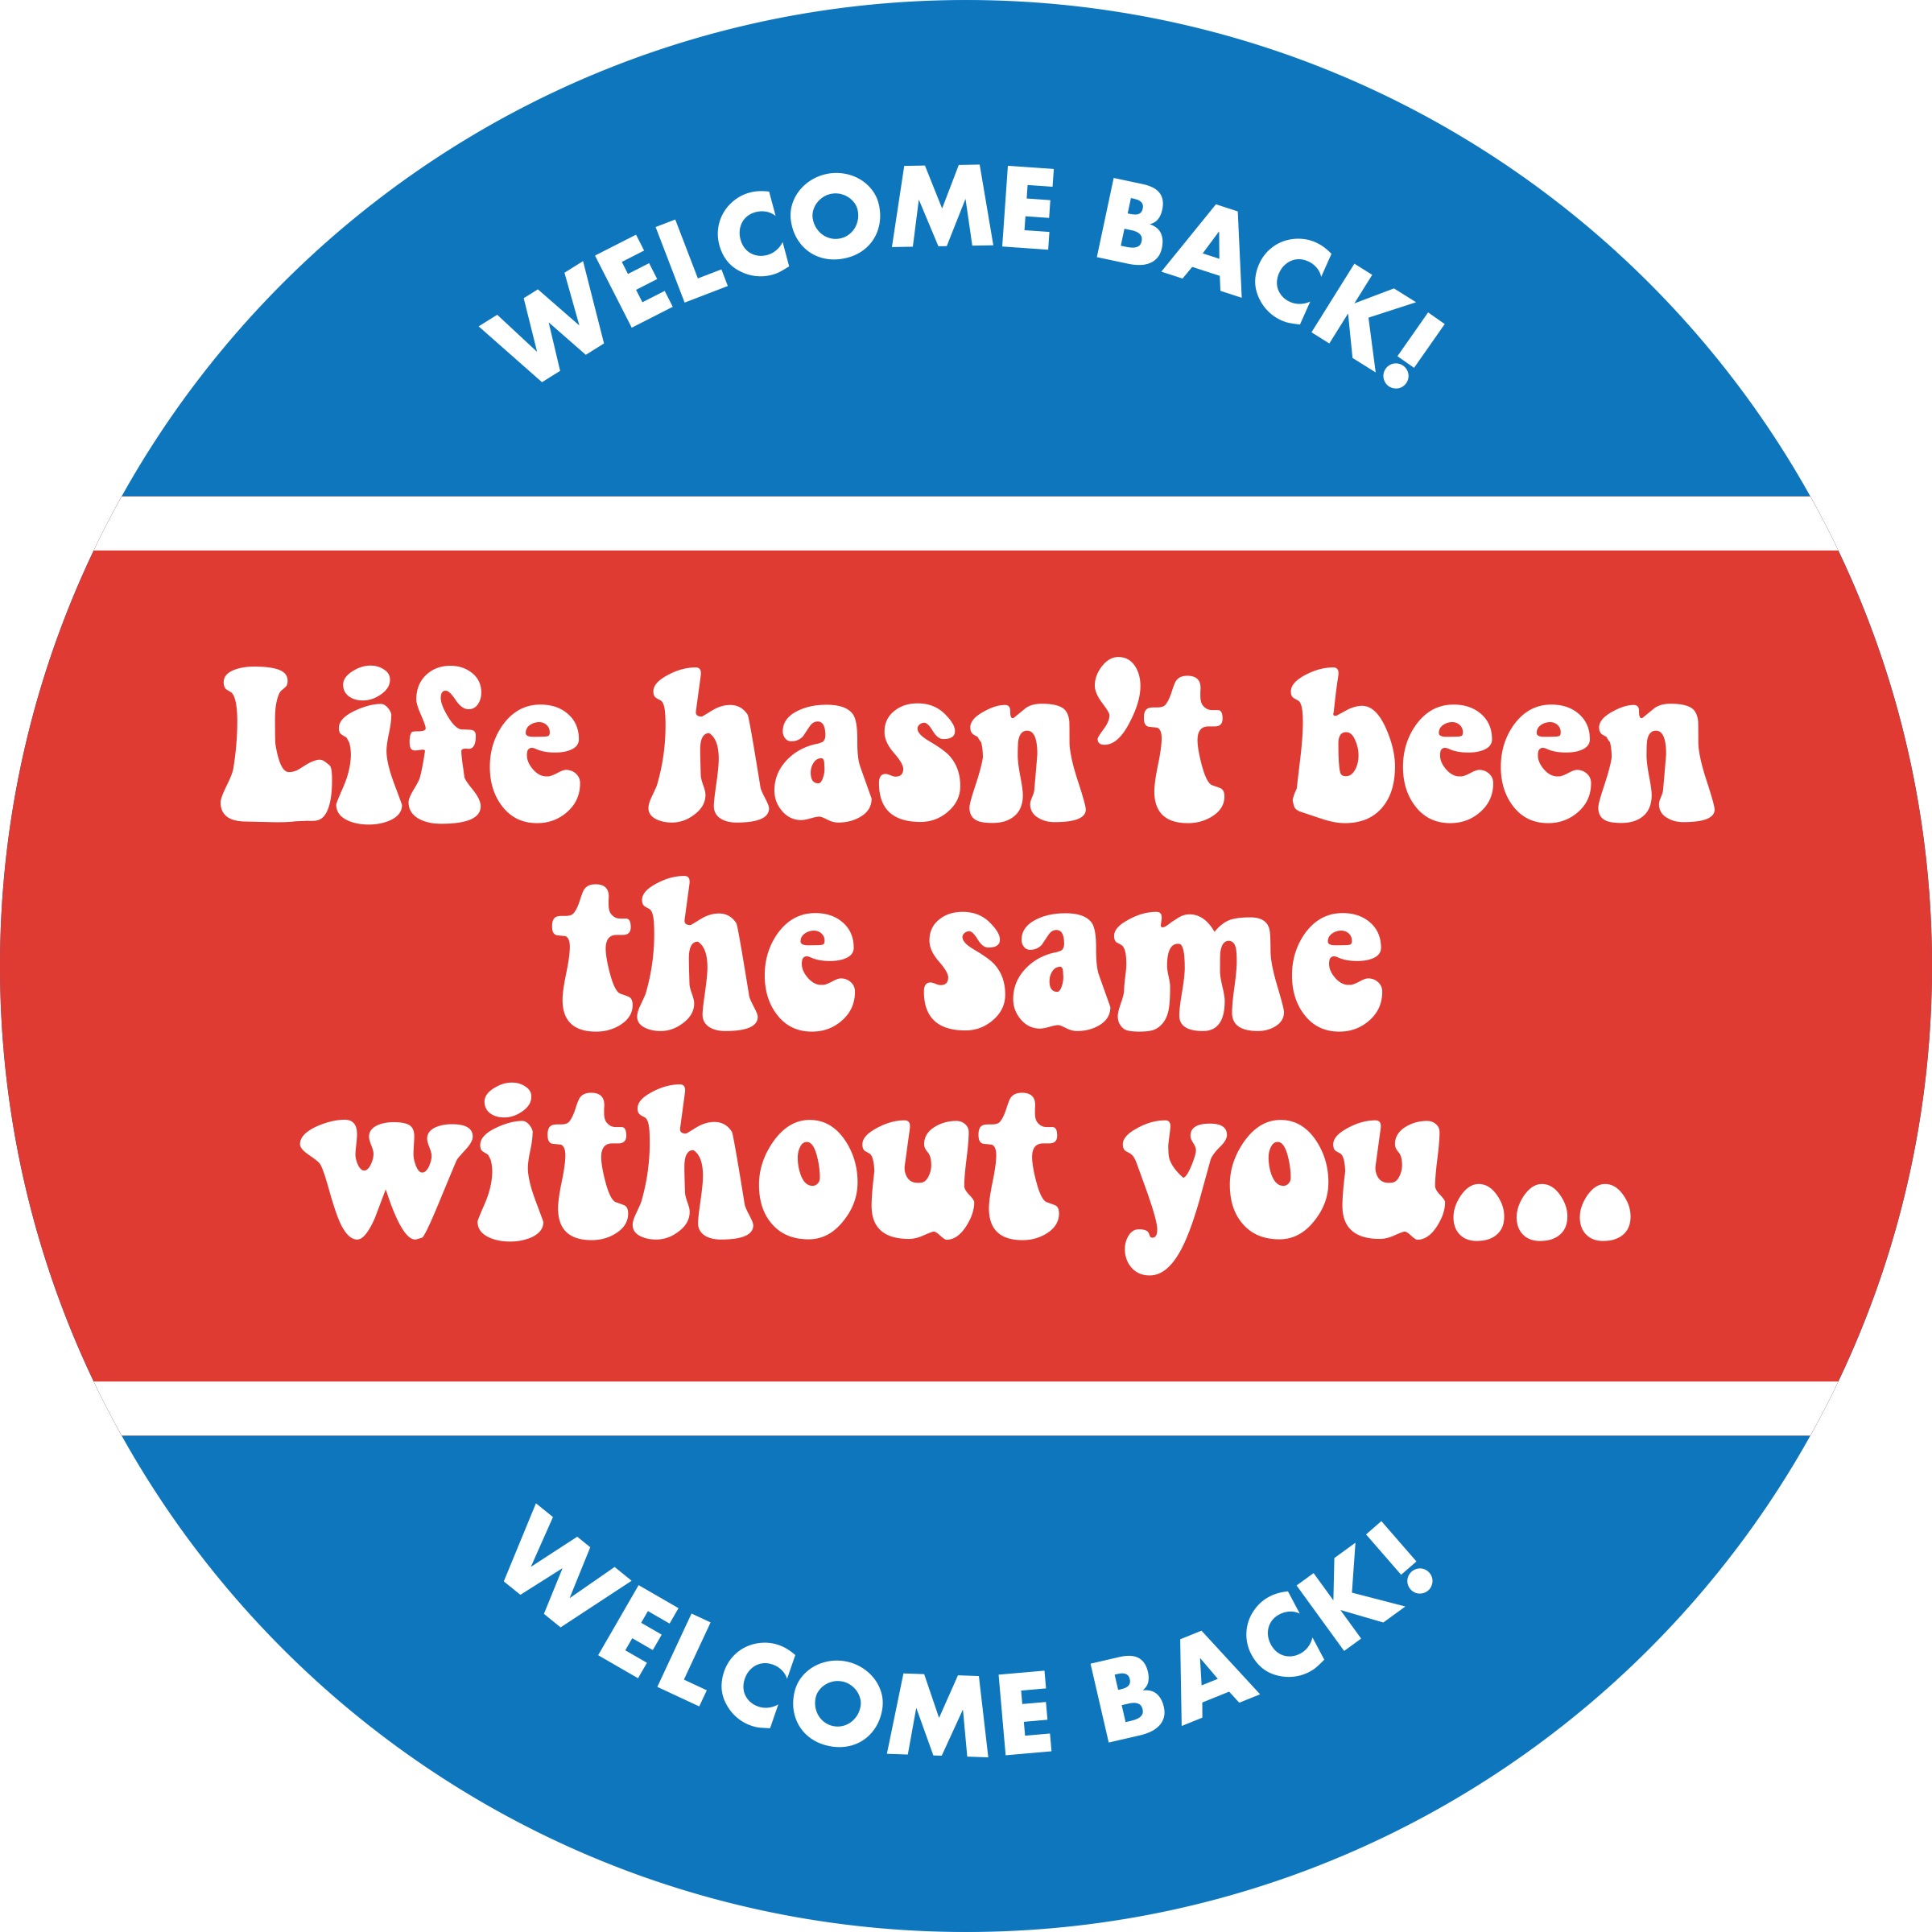 Life Hasn't Been the Same Without You Business Reopening Floor Decal